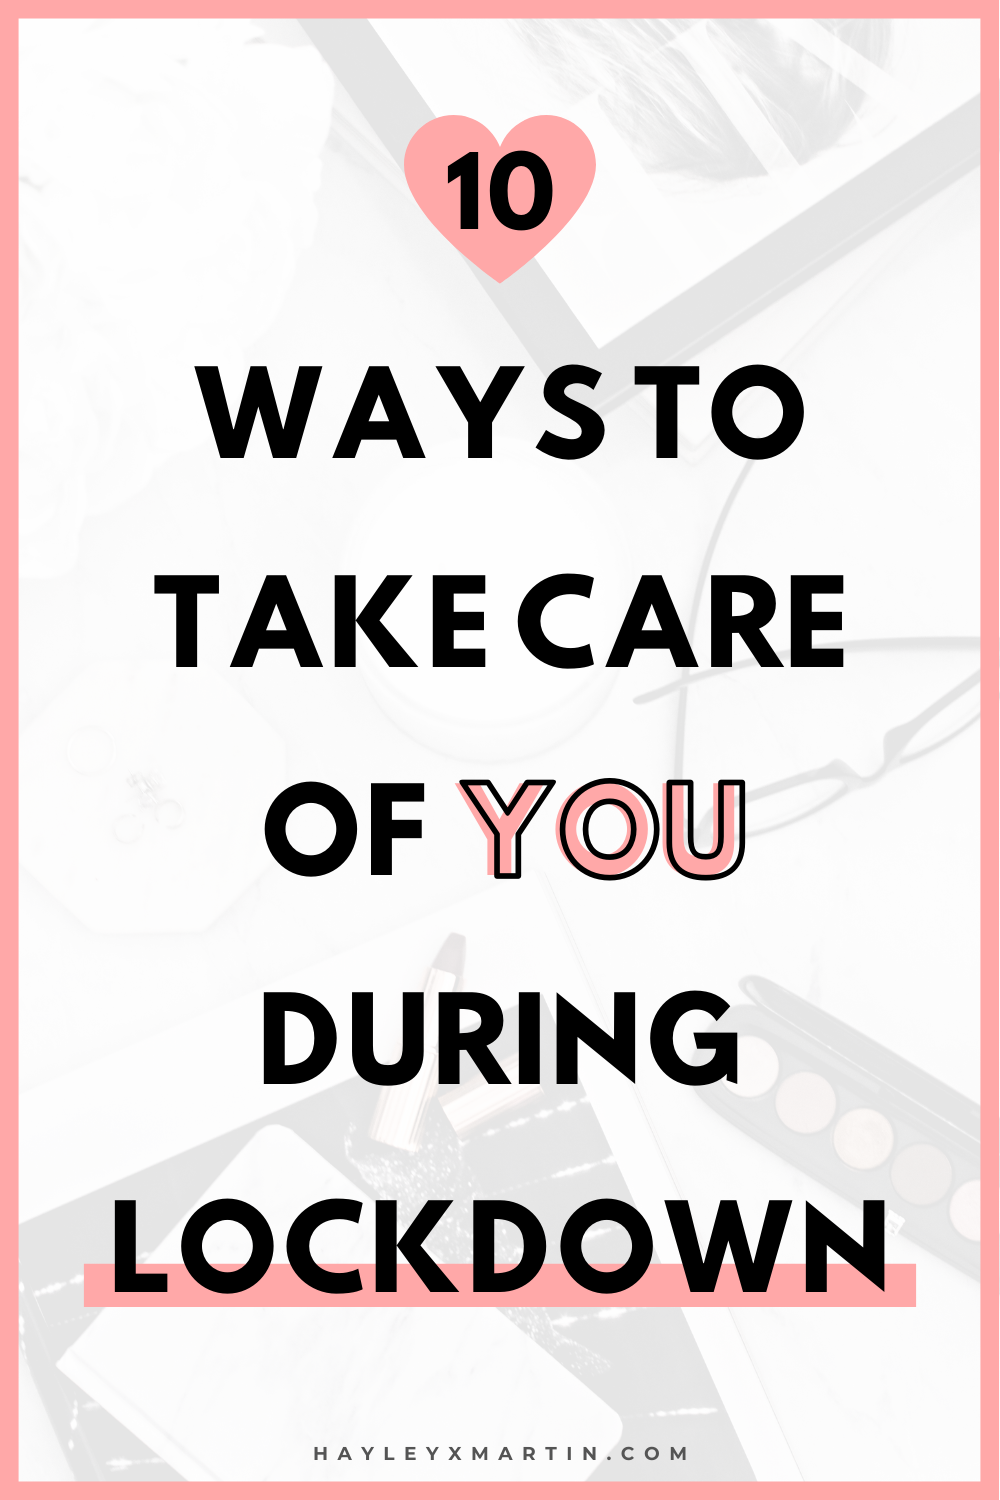 10 WAYS TO TAKE CARE OF YOU DURING LOCKDOWN | HAYLEYXMARTIN